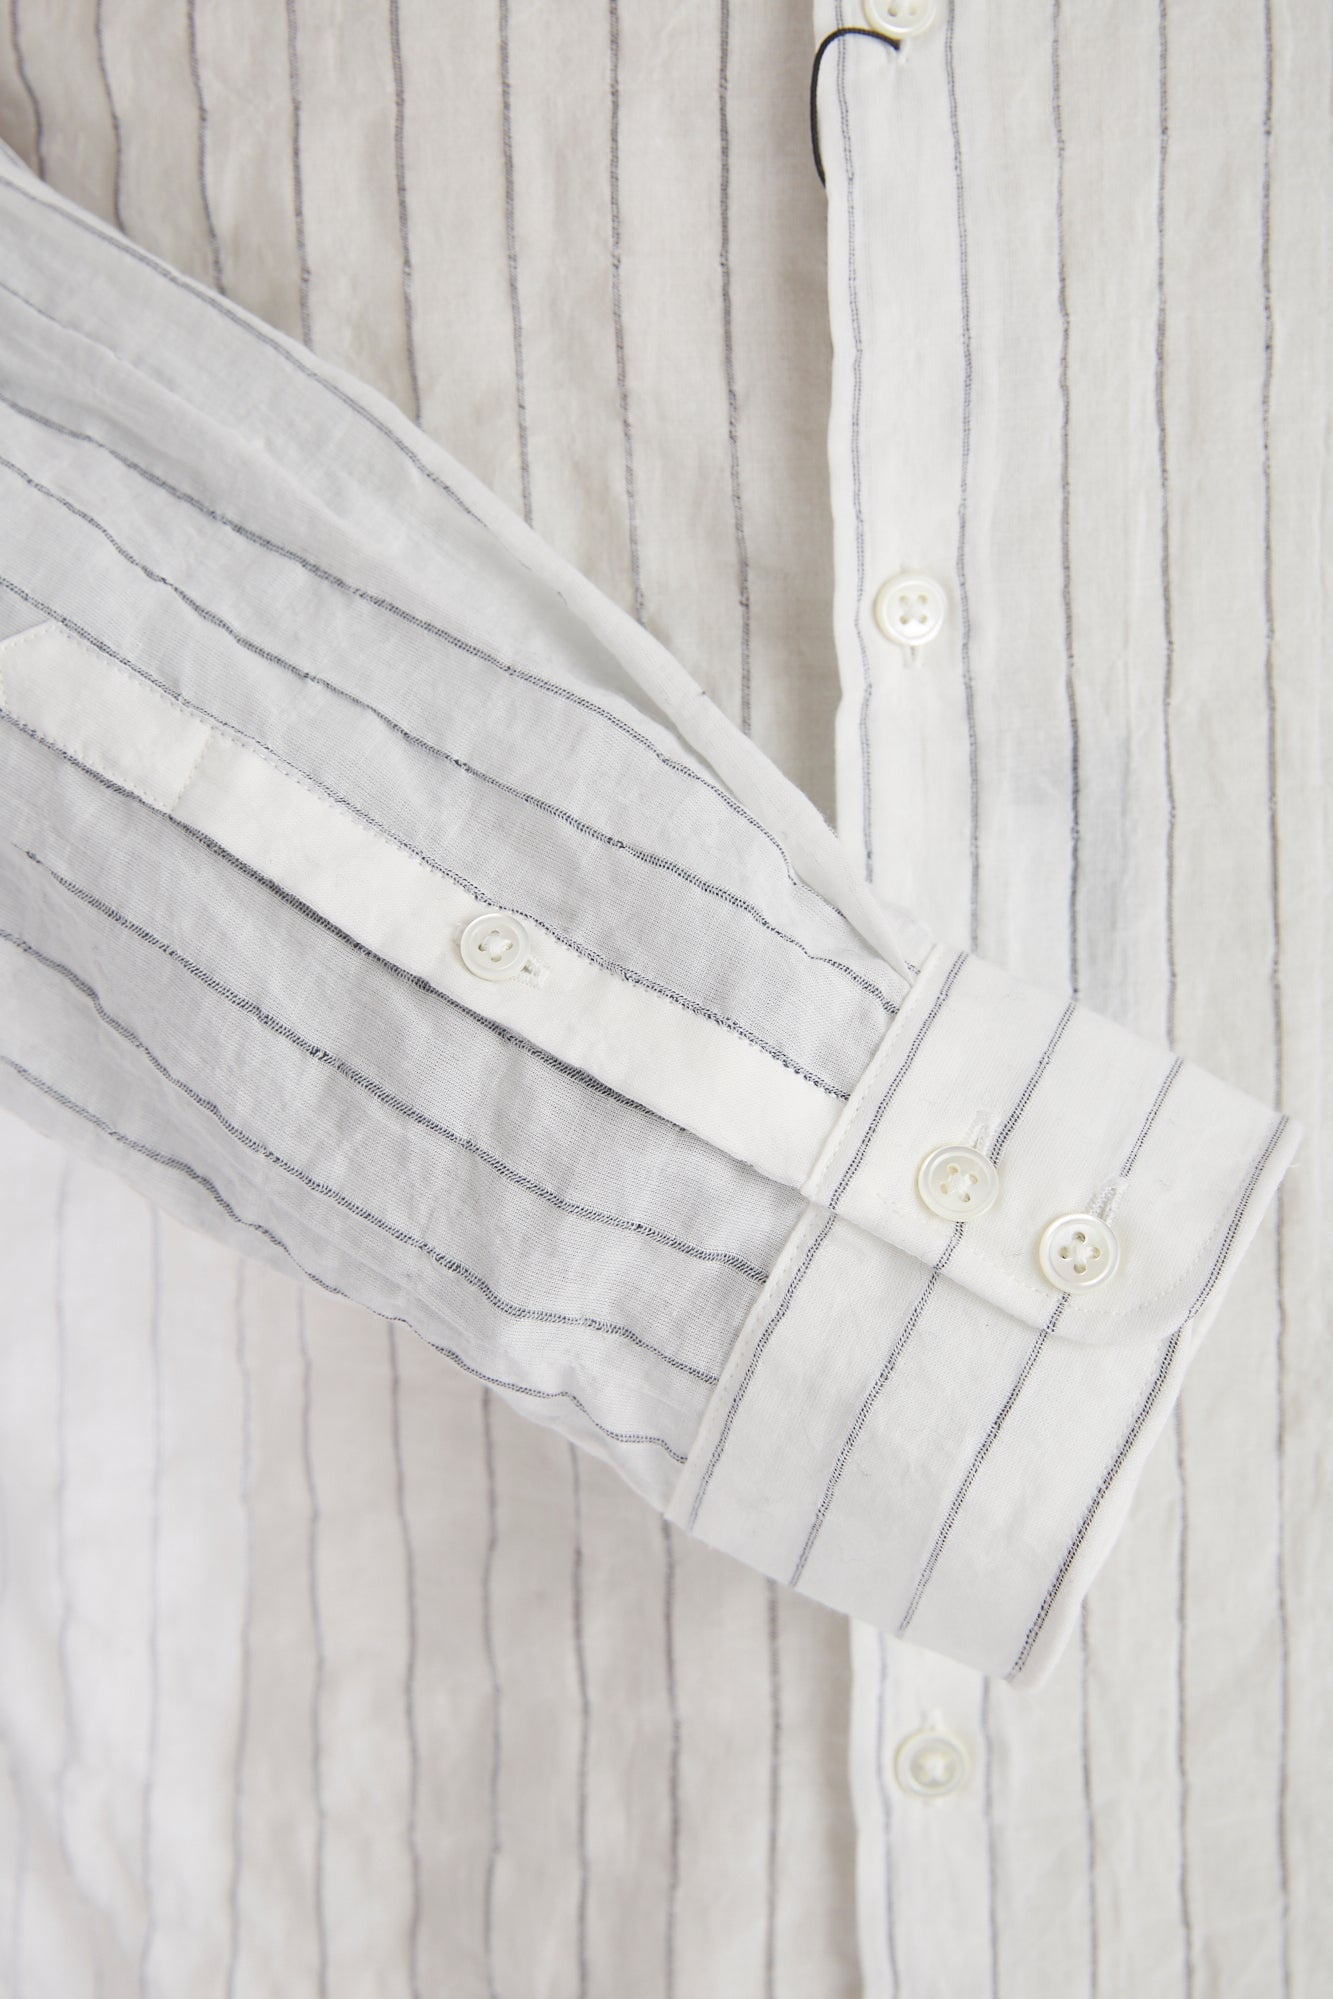 John Varvatos Striped Stand Collar Shirt - Shirts - John Varvatos - LALONDE's